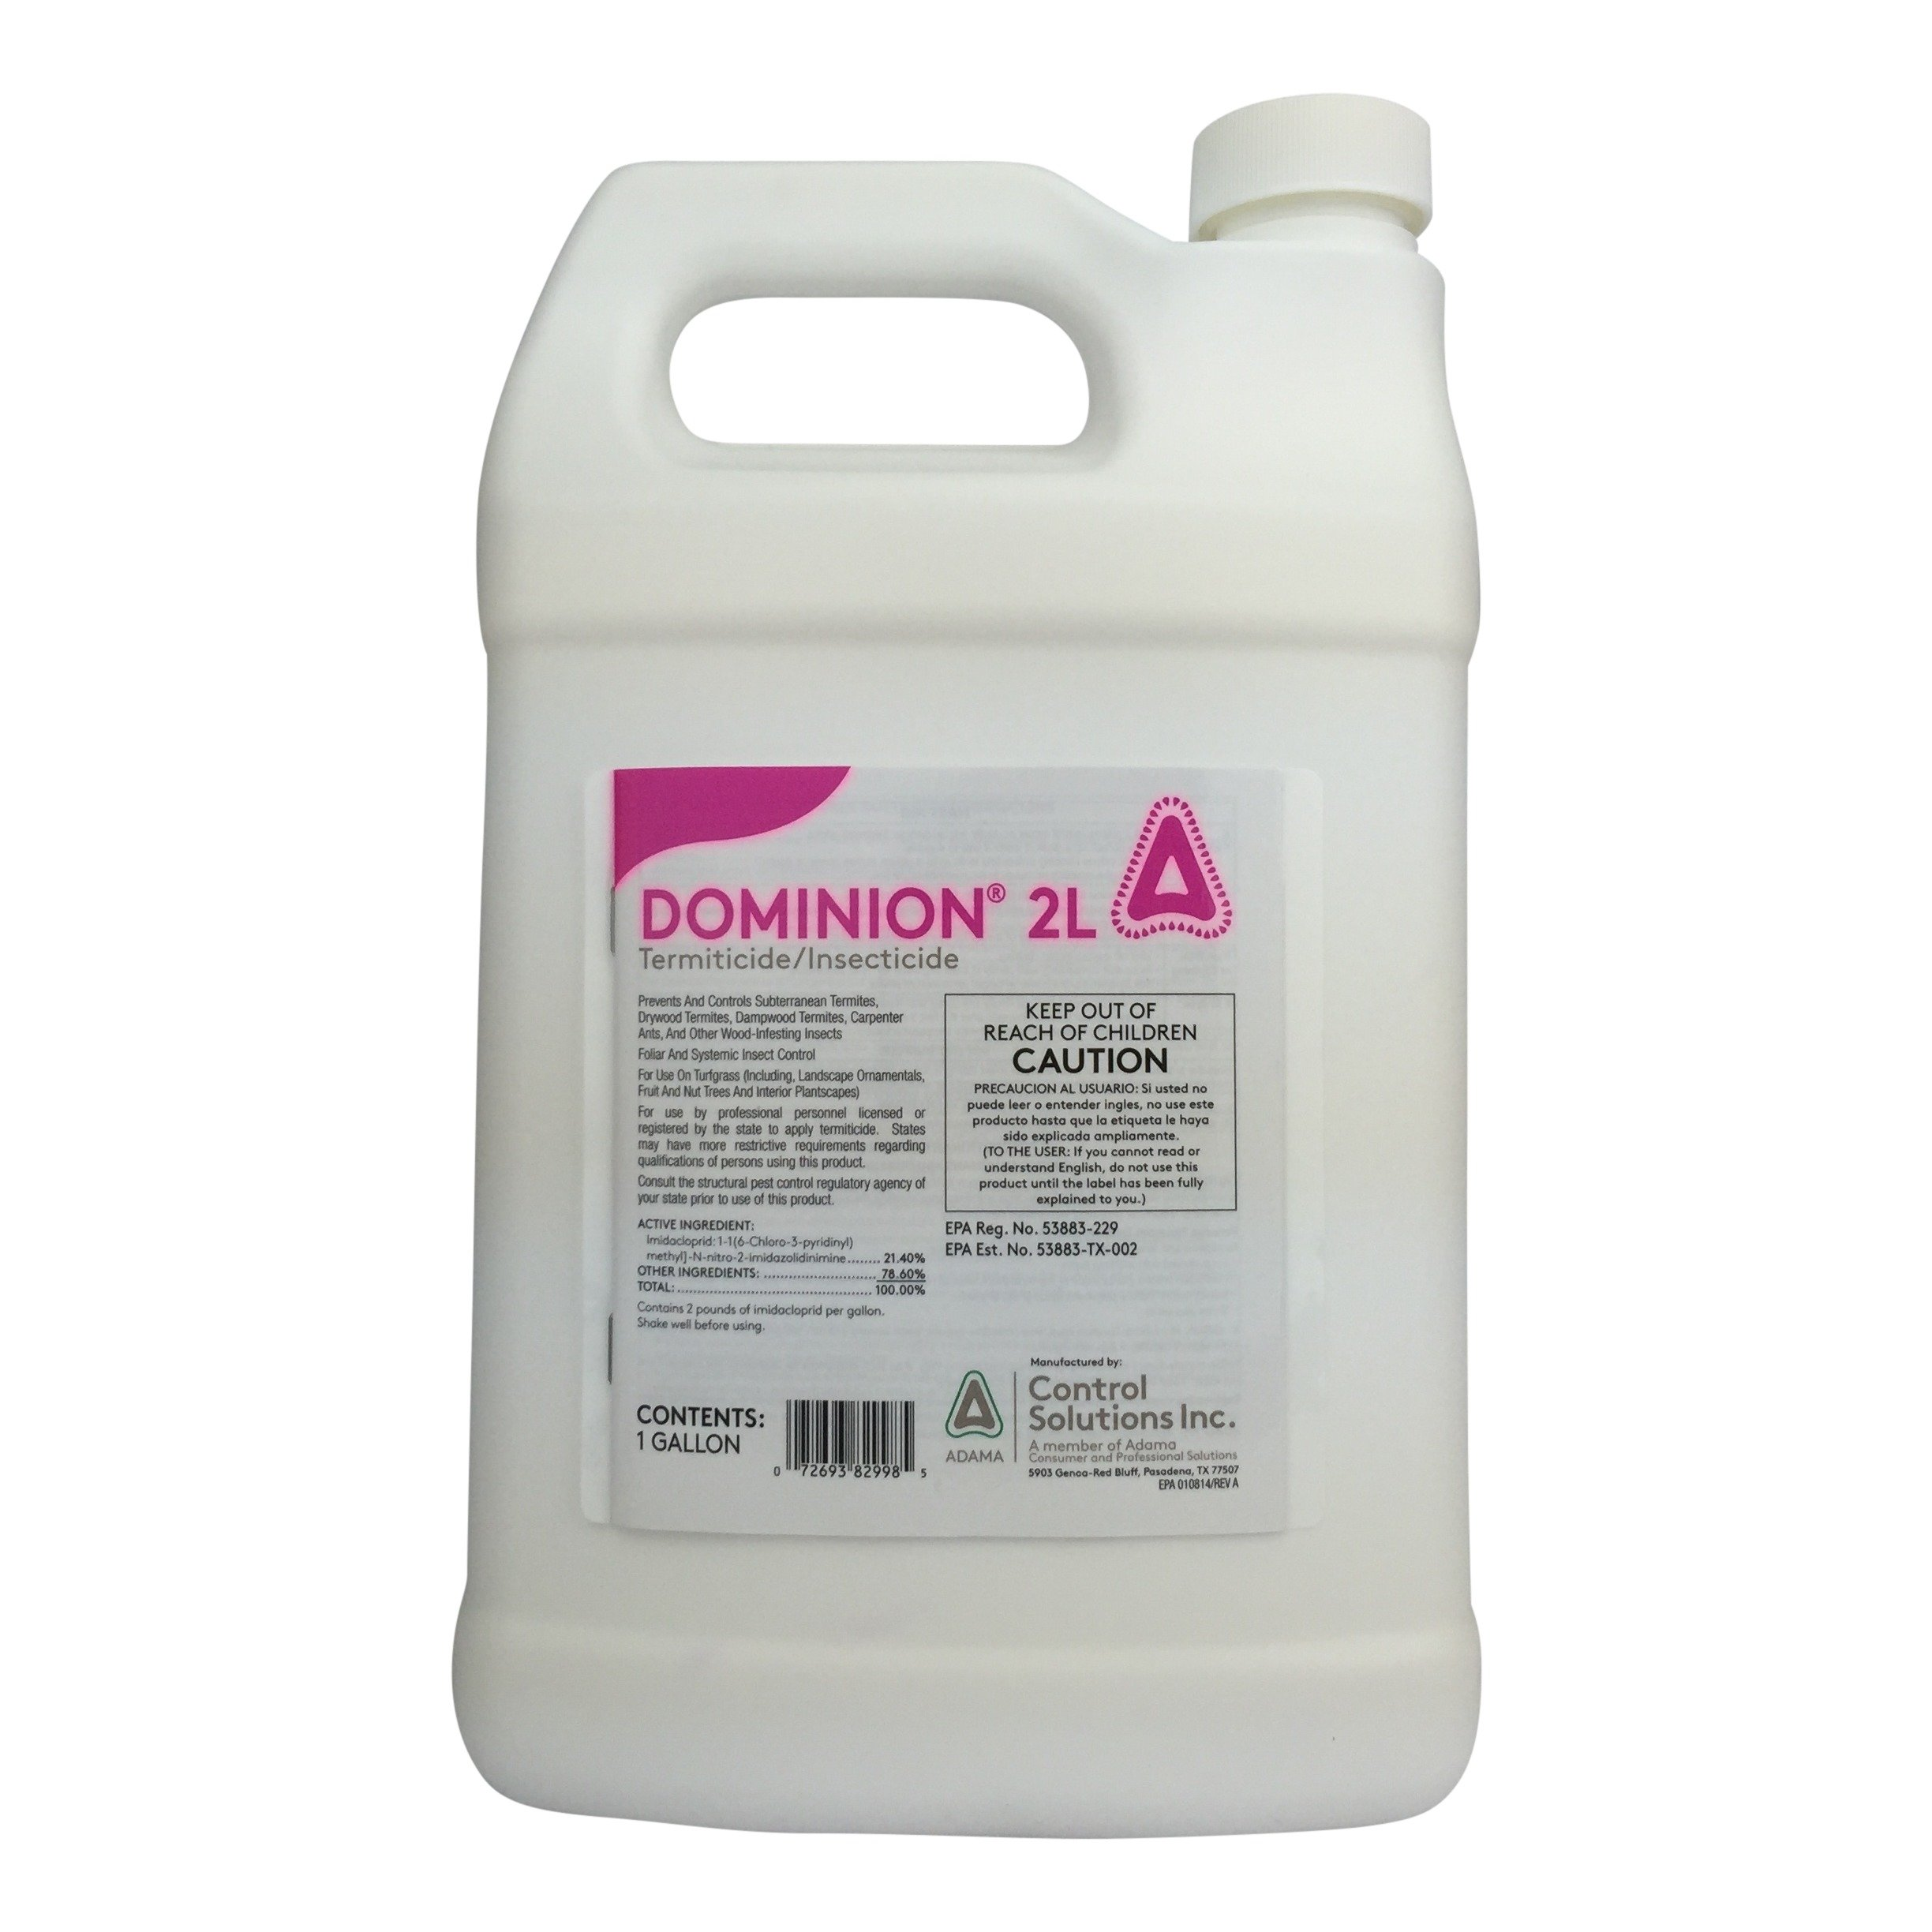 Control Solutions Dominion 2L 21.4% Imidacloprid-1 Gallon 785499 by Control Solutions